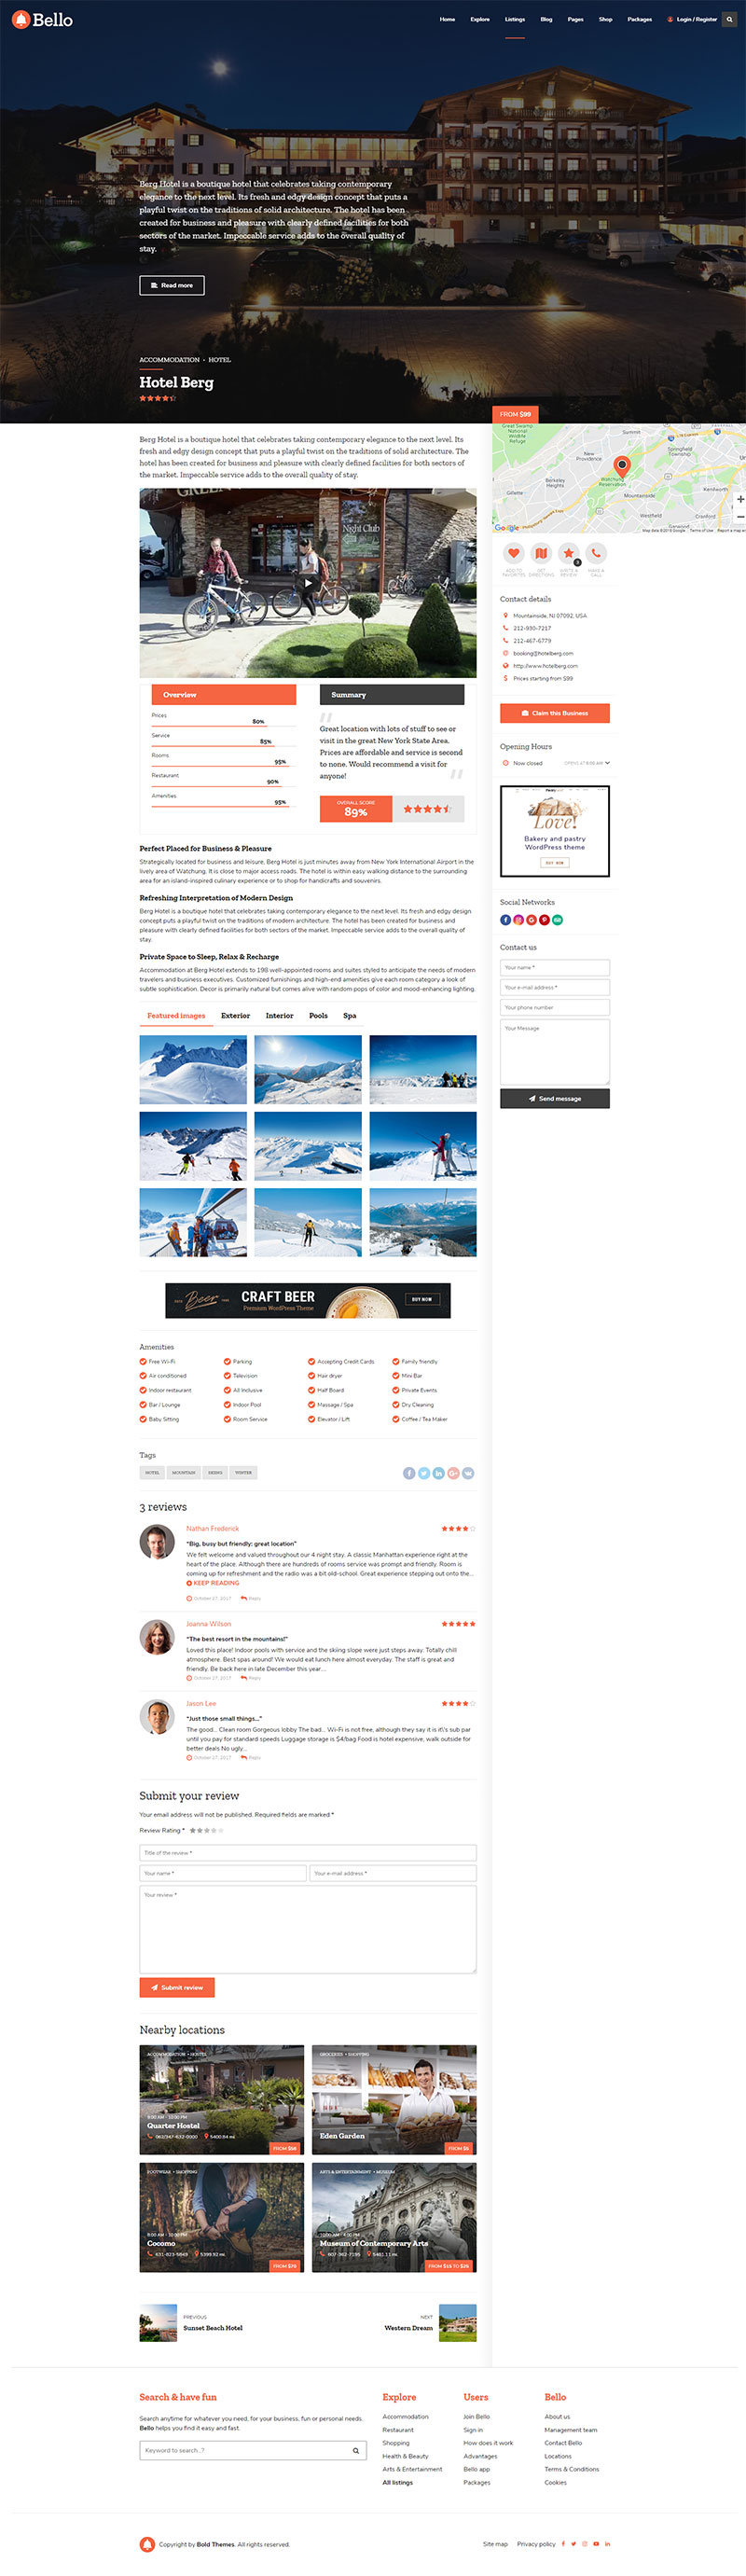 https://bello.bold-themes.com/wp-content/uploads/2018/08/Demo-page-04-Listing-Fullscreen-Image.jpg